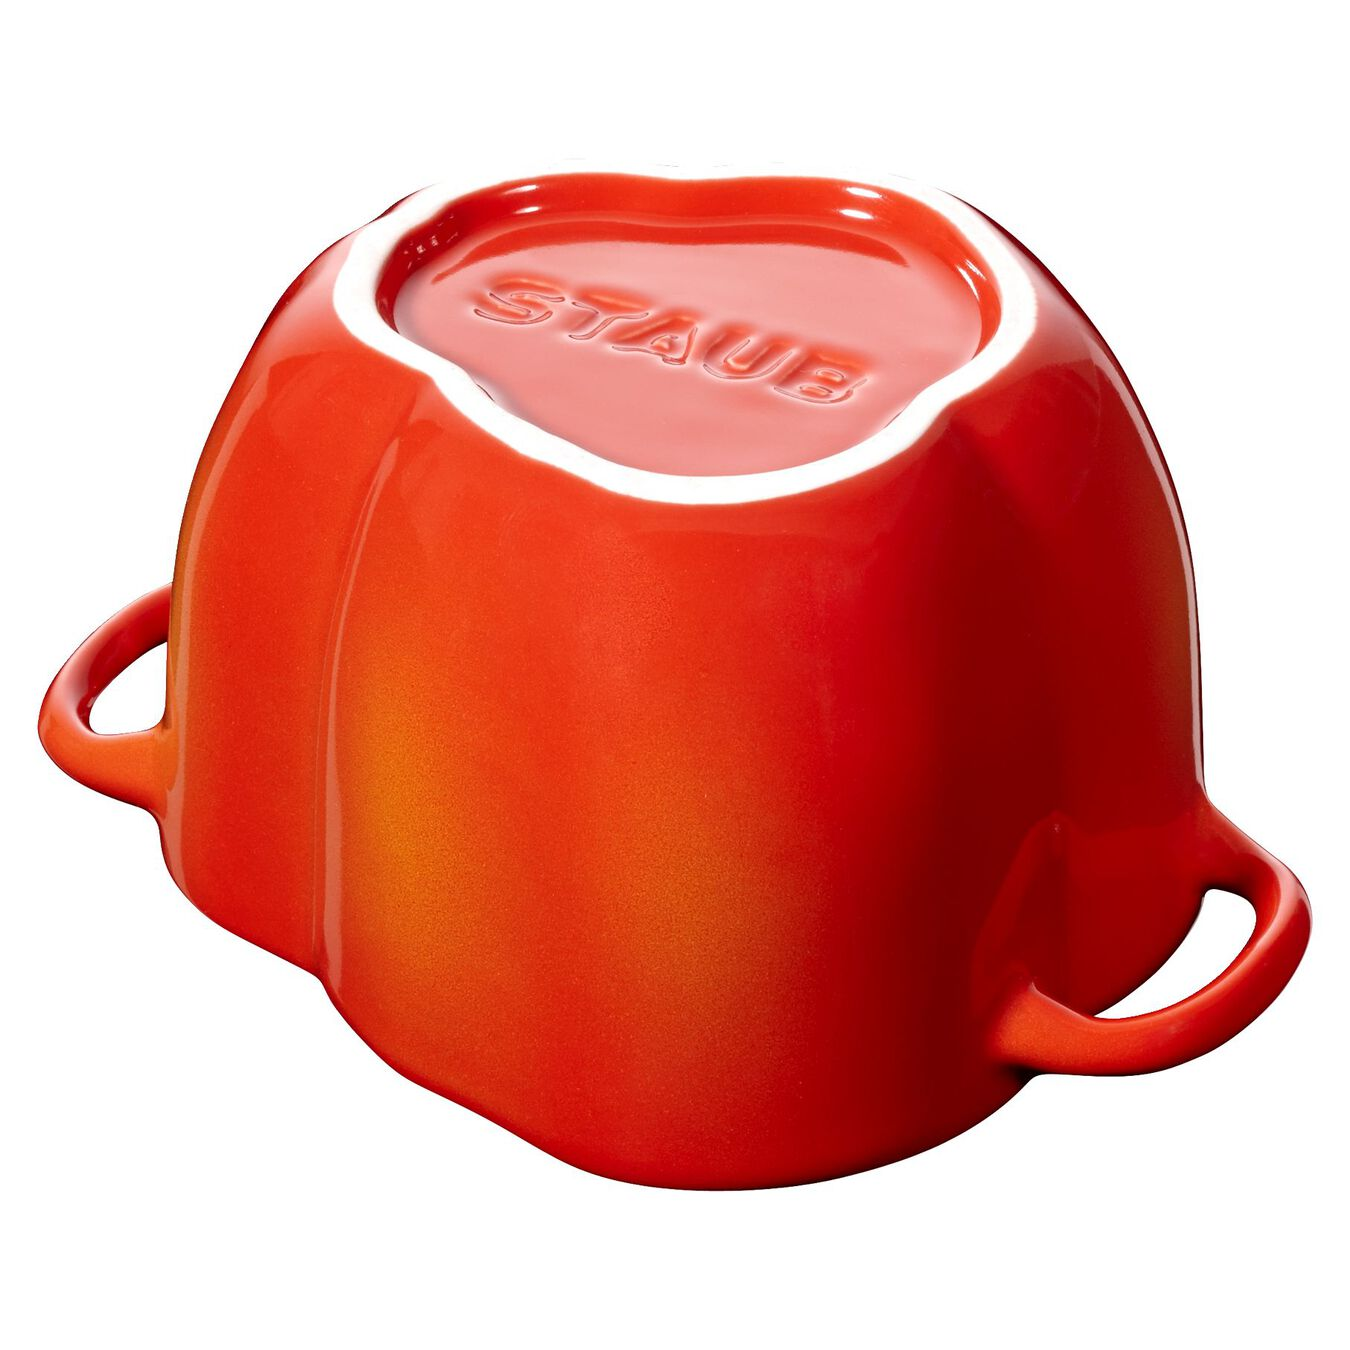 450 ml Ceramic pepper Cocotte, orange-red,,large 6